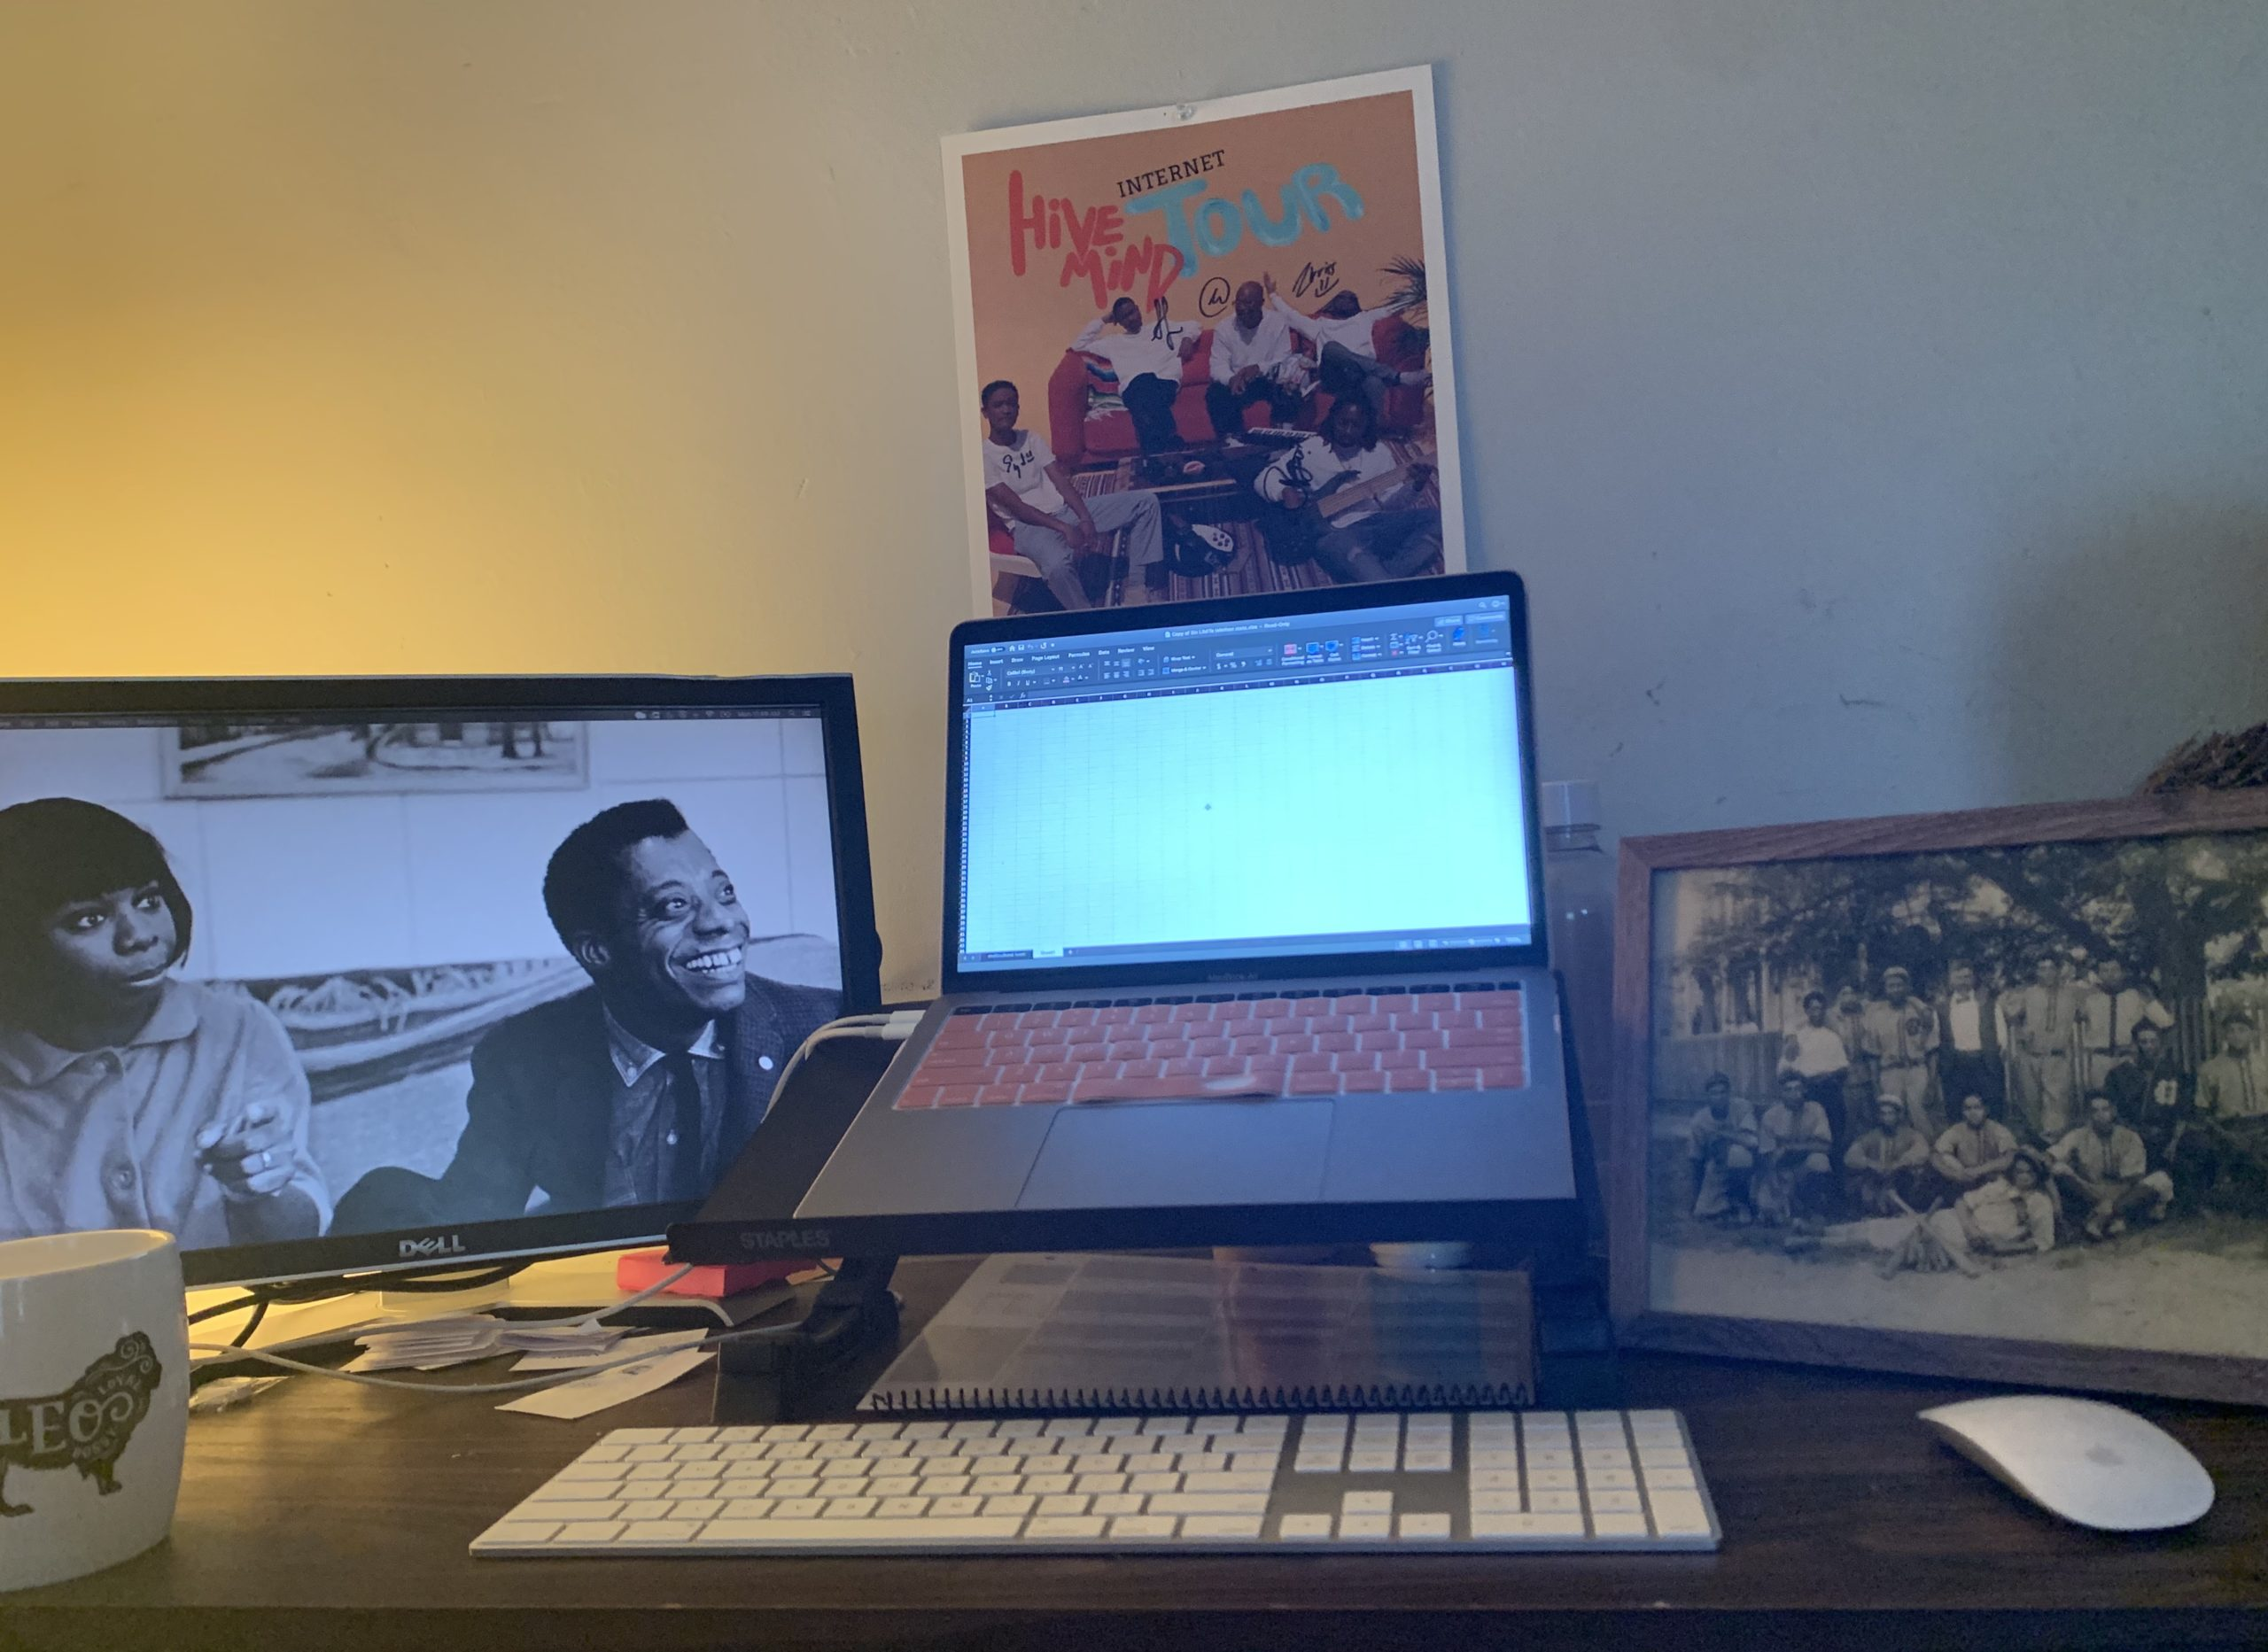 DJ's dual monitor set-up and family photo